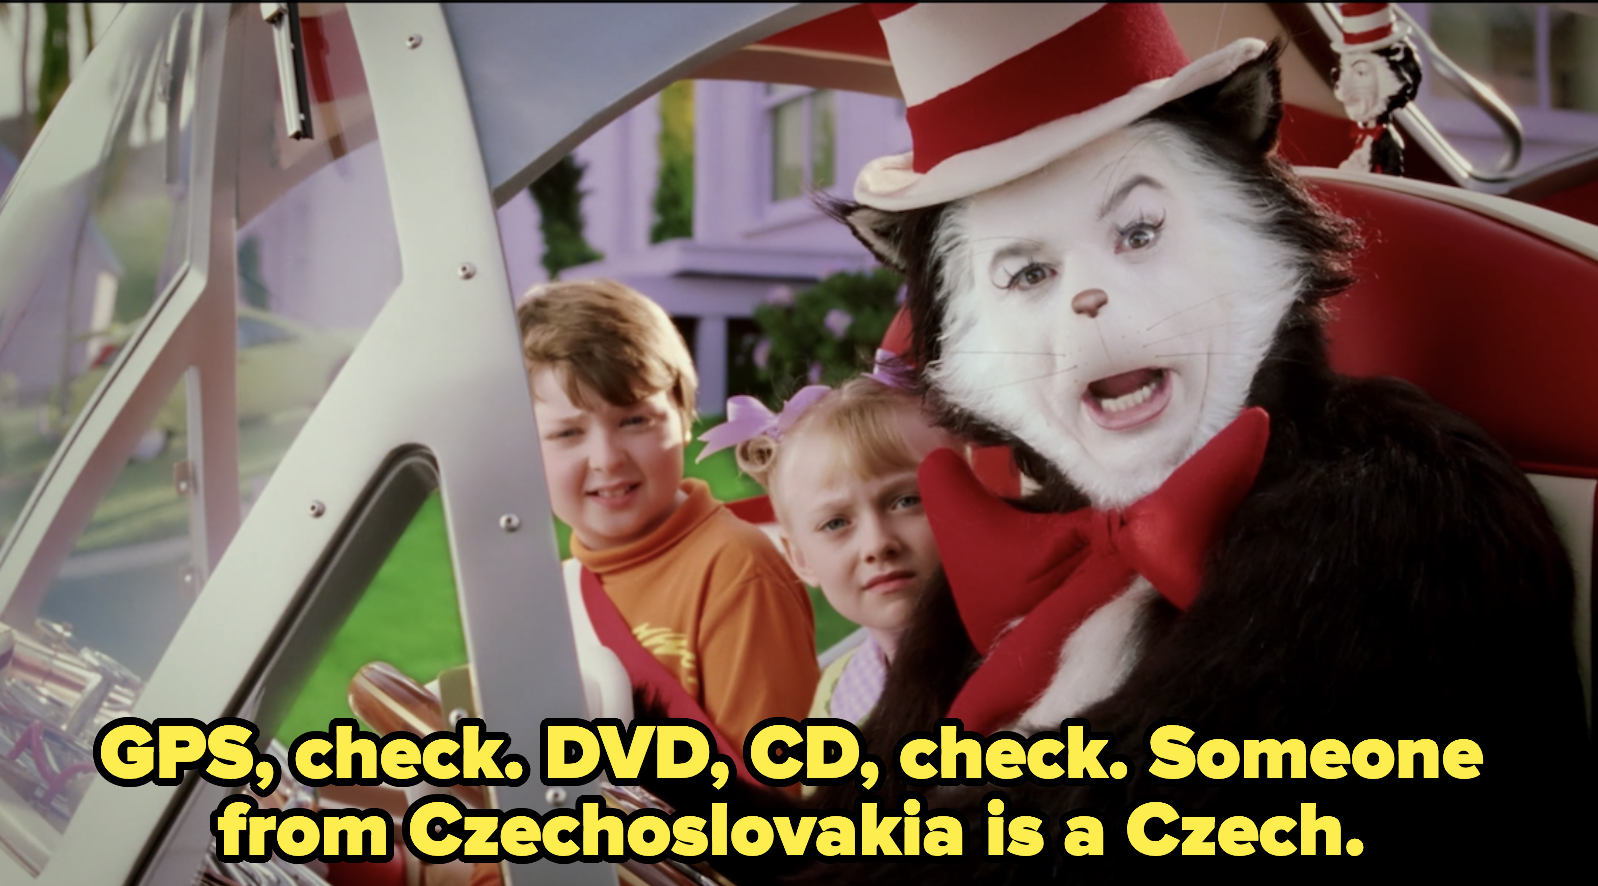 The cat says:GPS, check. DVD, CD, check. Someone from Czechoslovakia is a Czech.